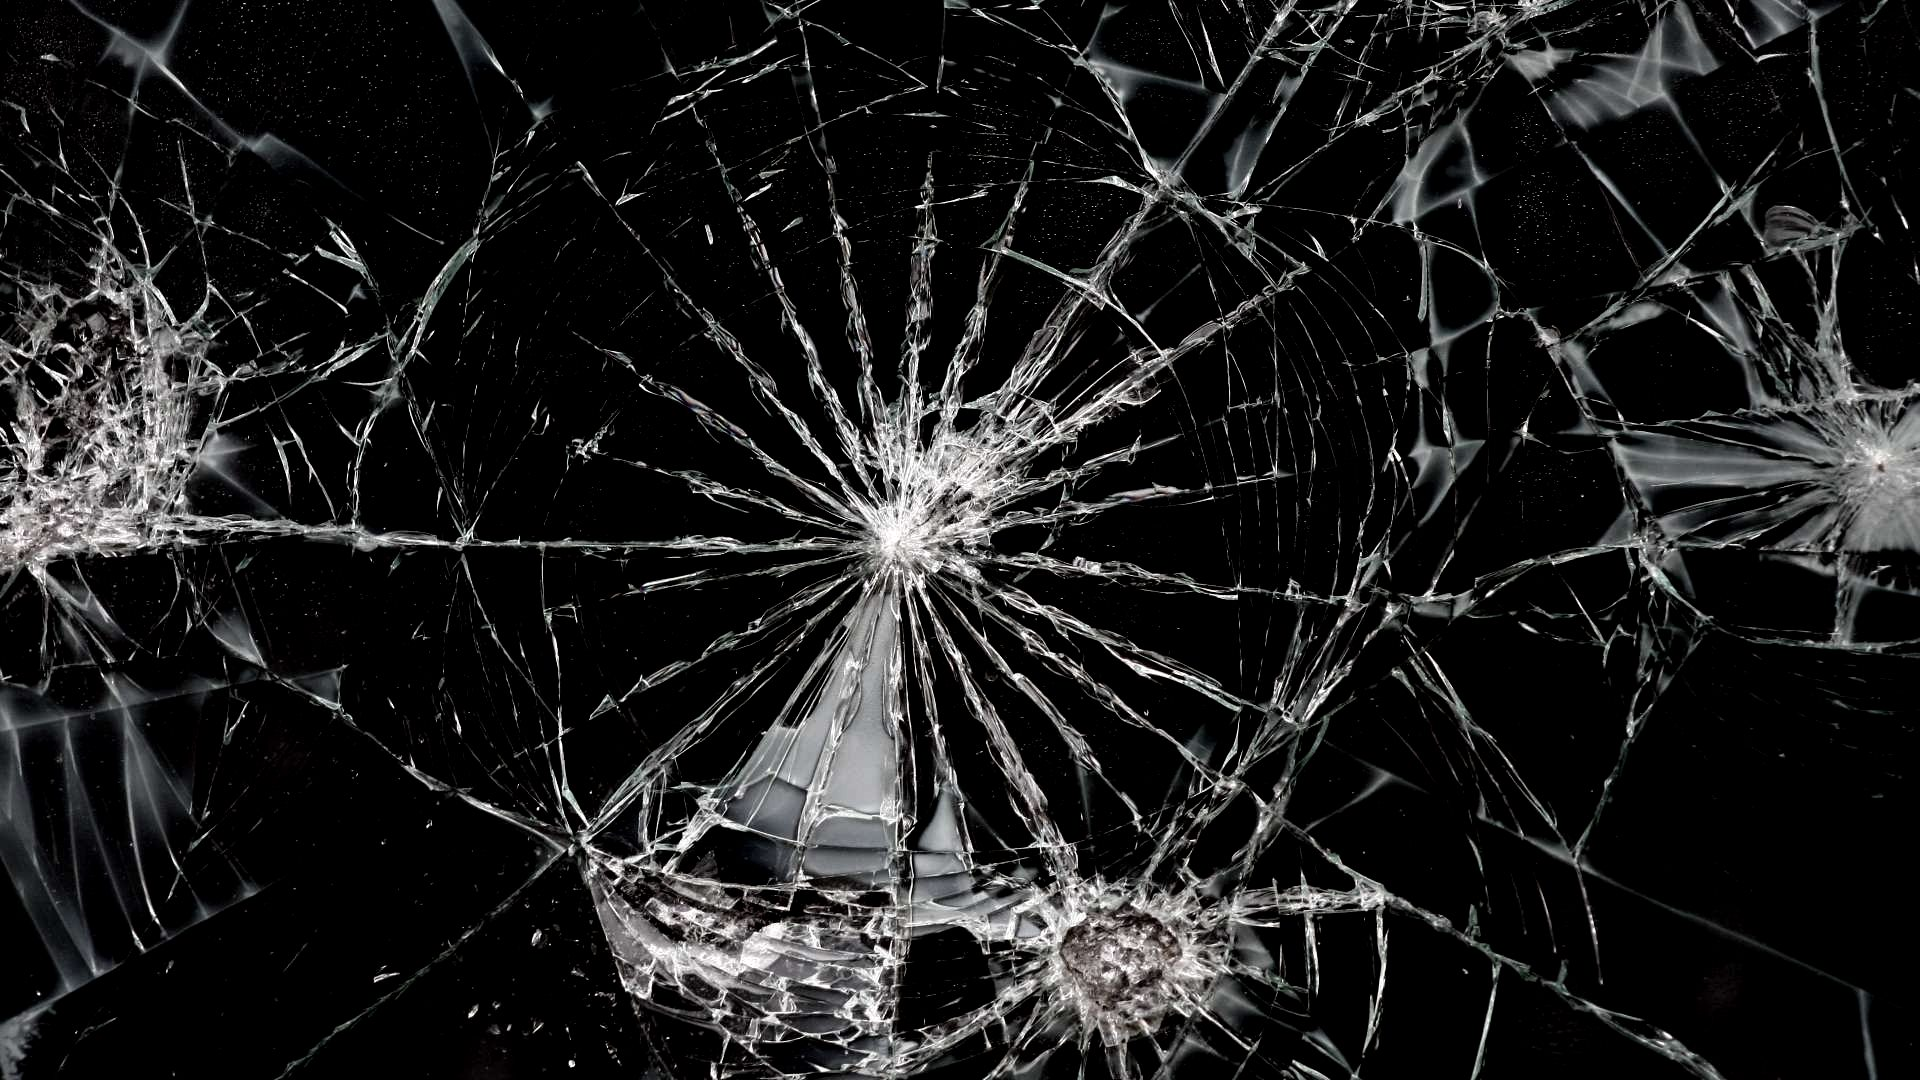 Dark Wallpapers For Iphone X Cracked Desktop Screen Prank